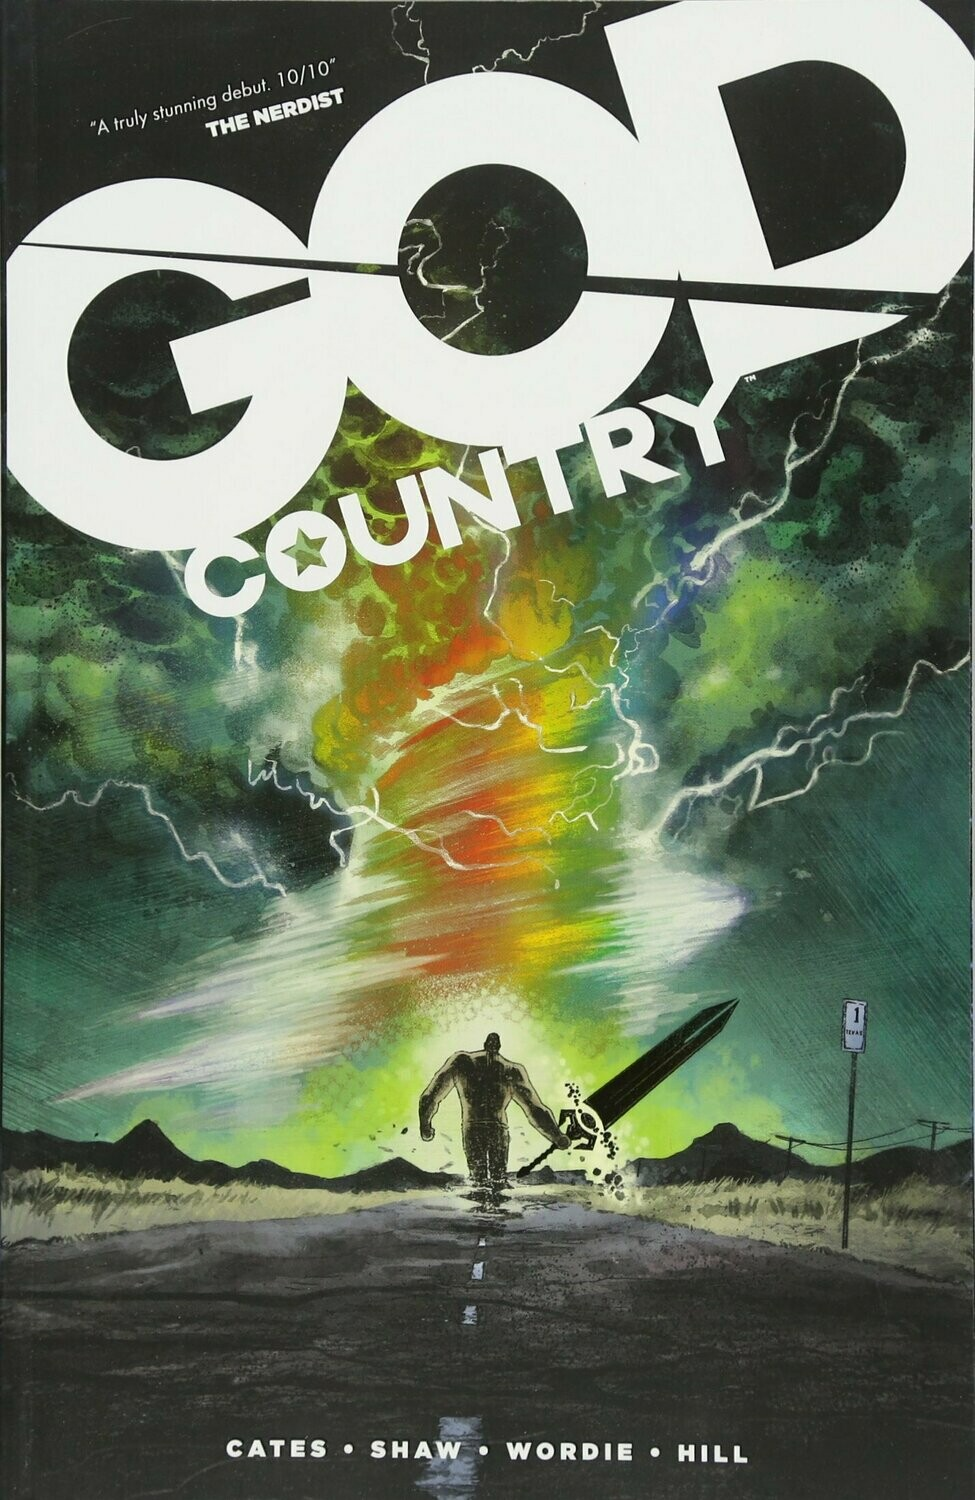 Cates and Shaw: God County